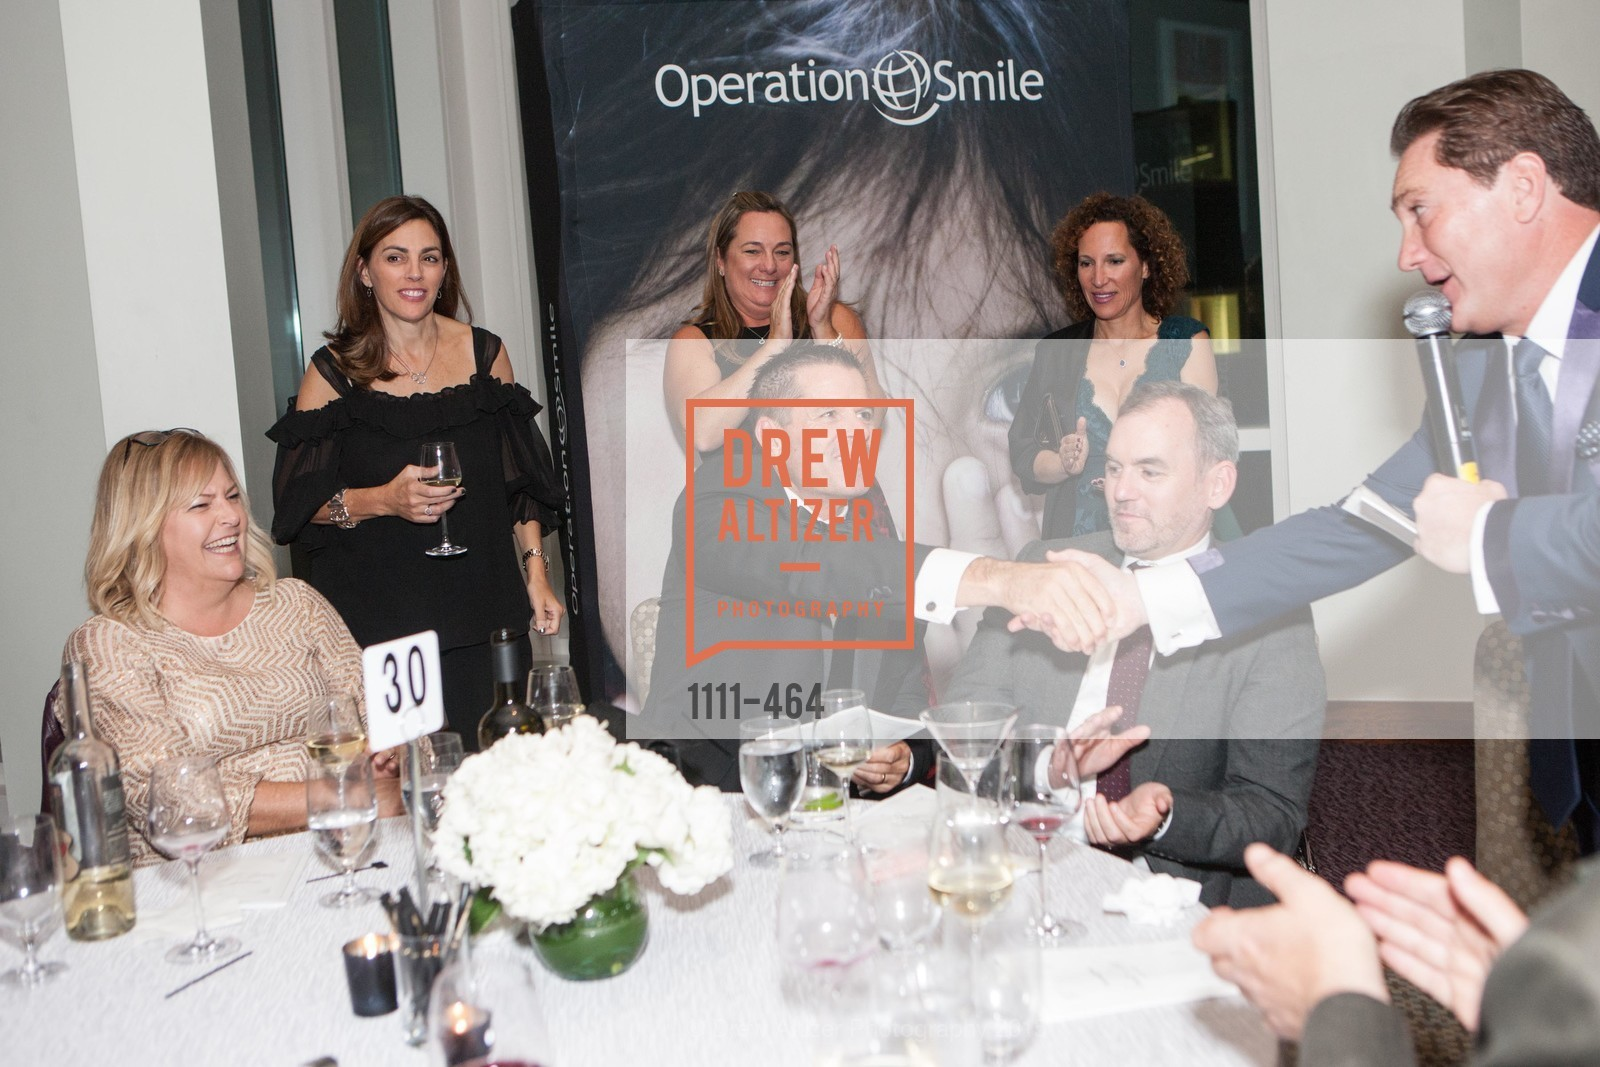 Lisa Lori, Liam Mayclem, Operation Smile Presents THE SAN FRANCISCO 2015 SMILE GALA, InterContinental Hotel, November 7th, 2015,Drew Altizer, Drew Altizer Photography, full-service agency, private events, San Francisco photographer, photographer california